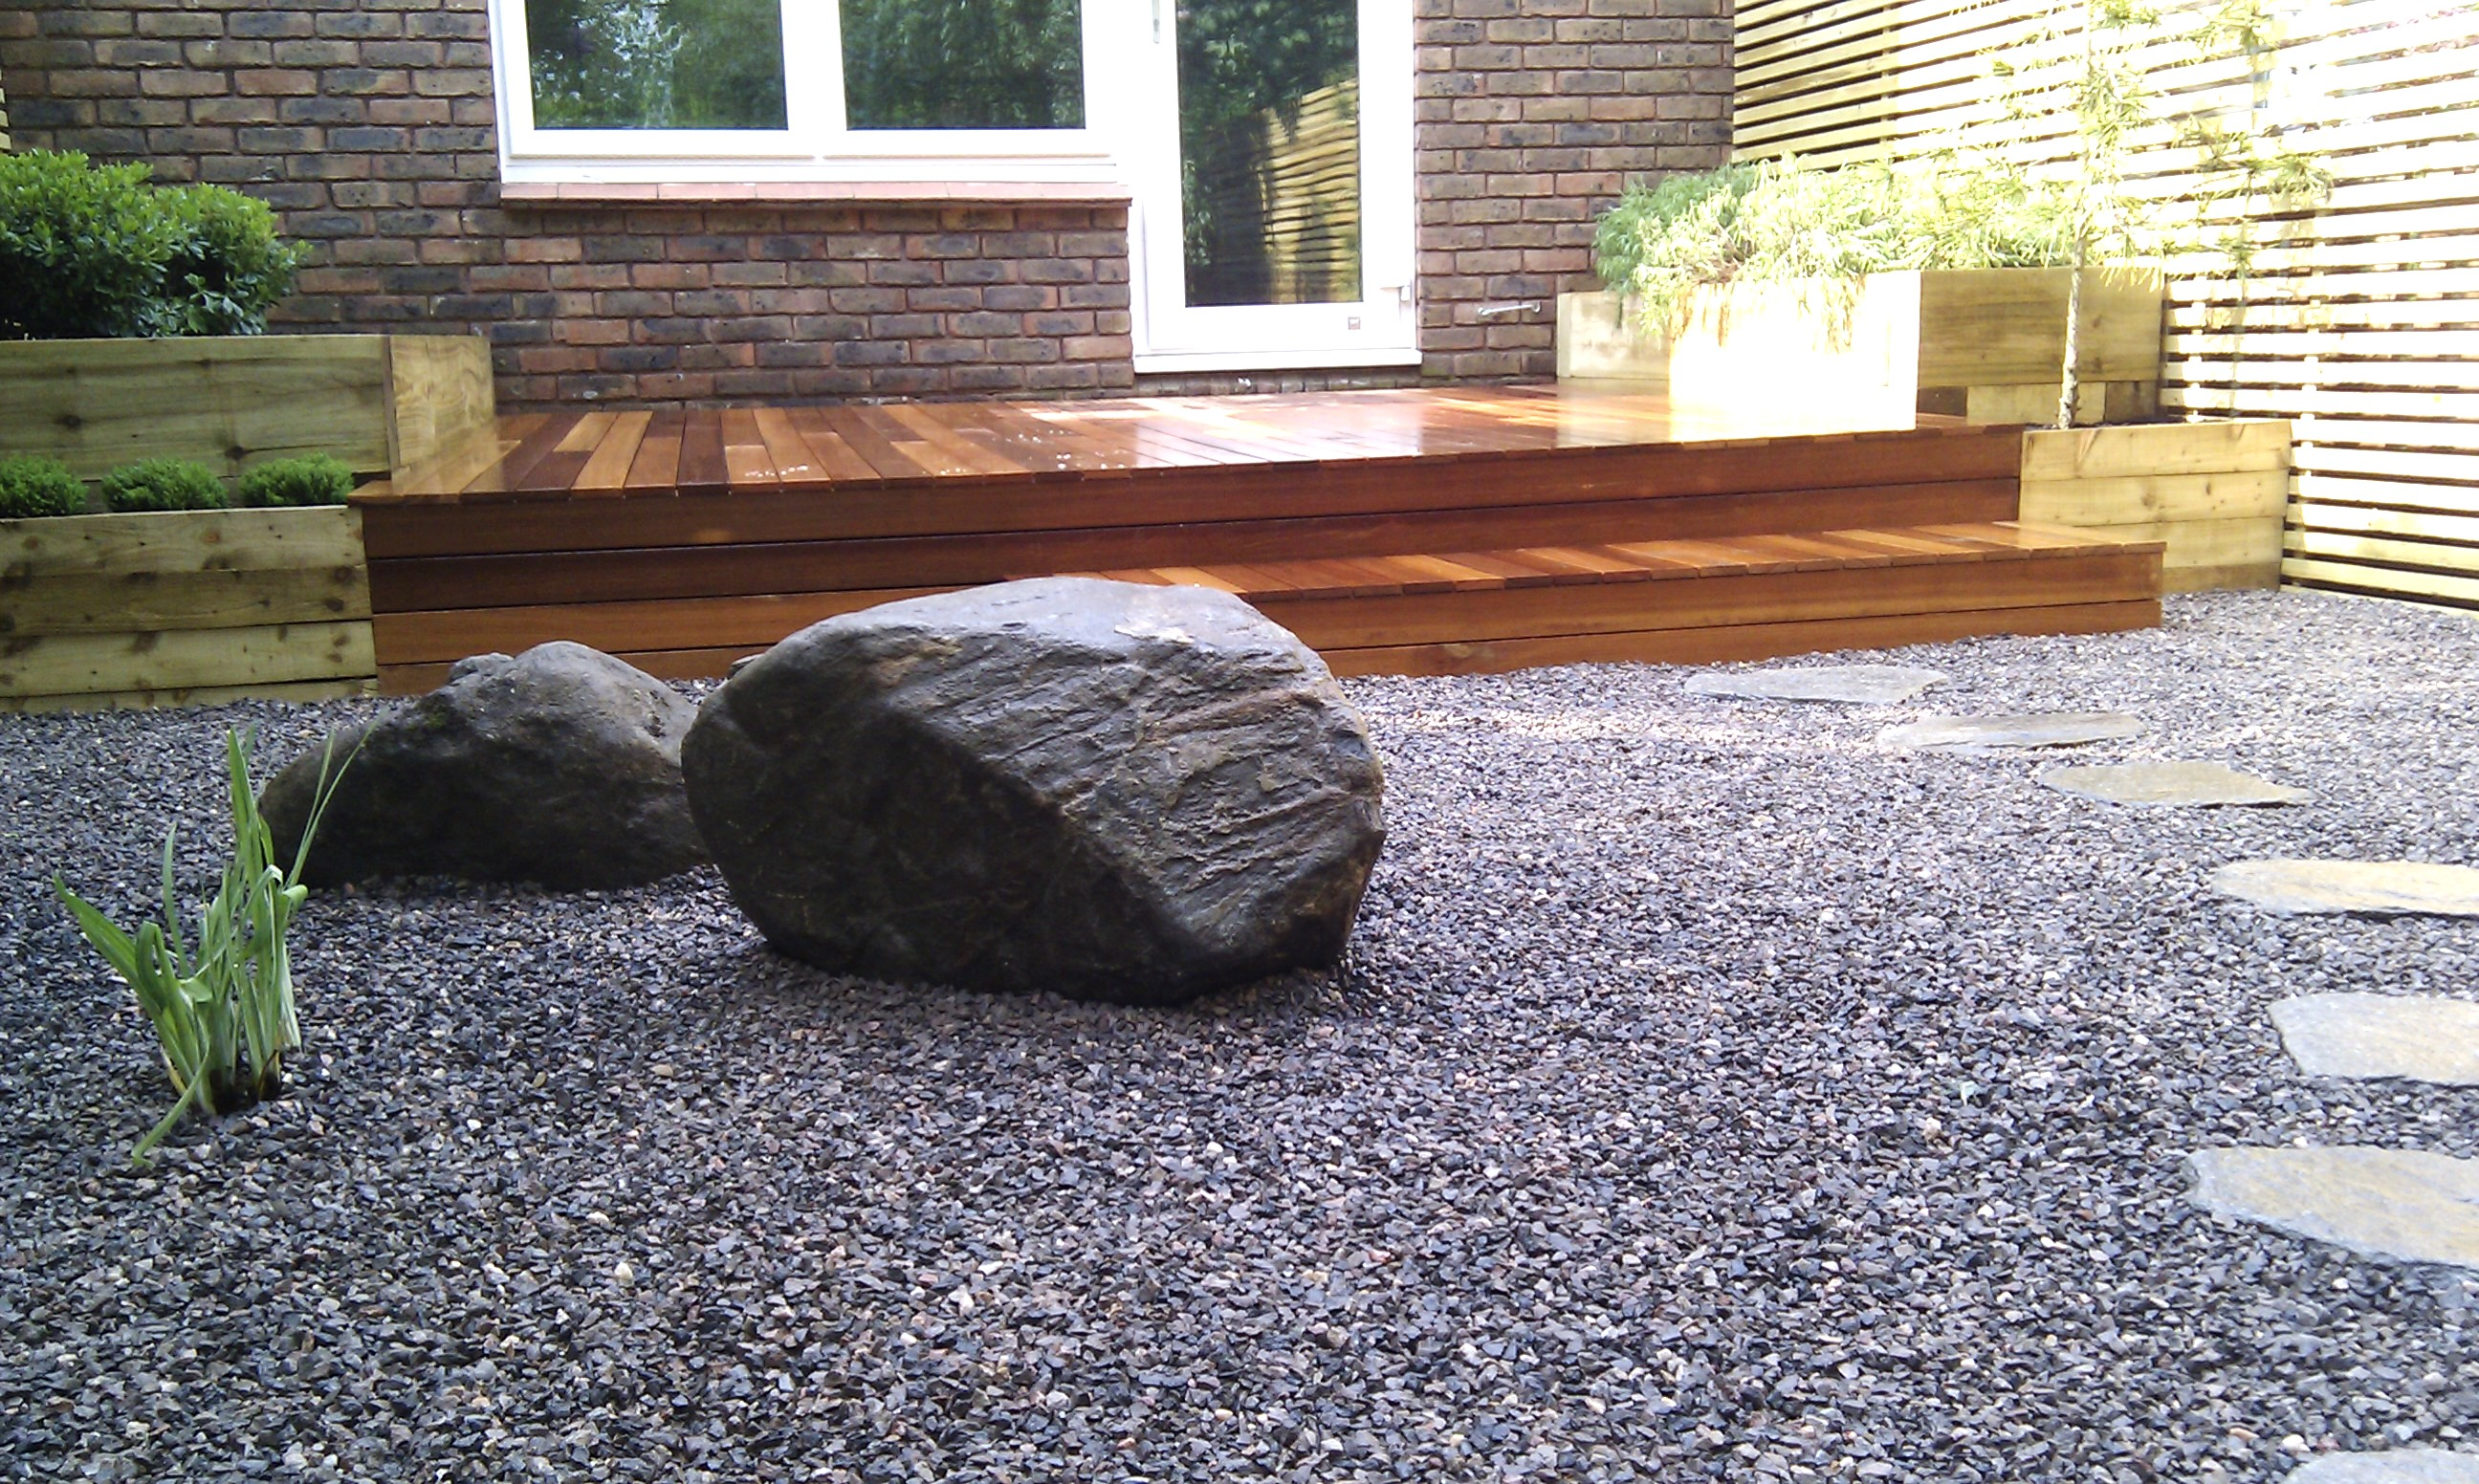 hardwood decking minimalist limestone chippings privacy screen south east london (34)